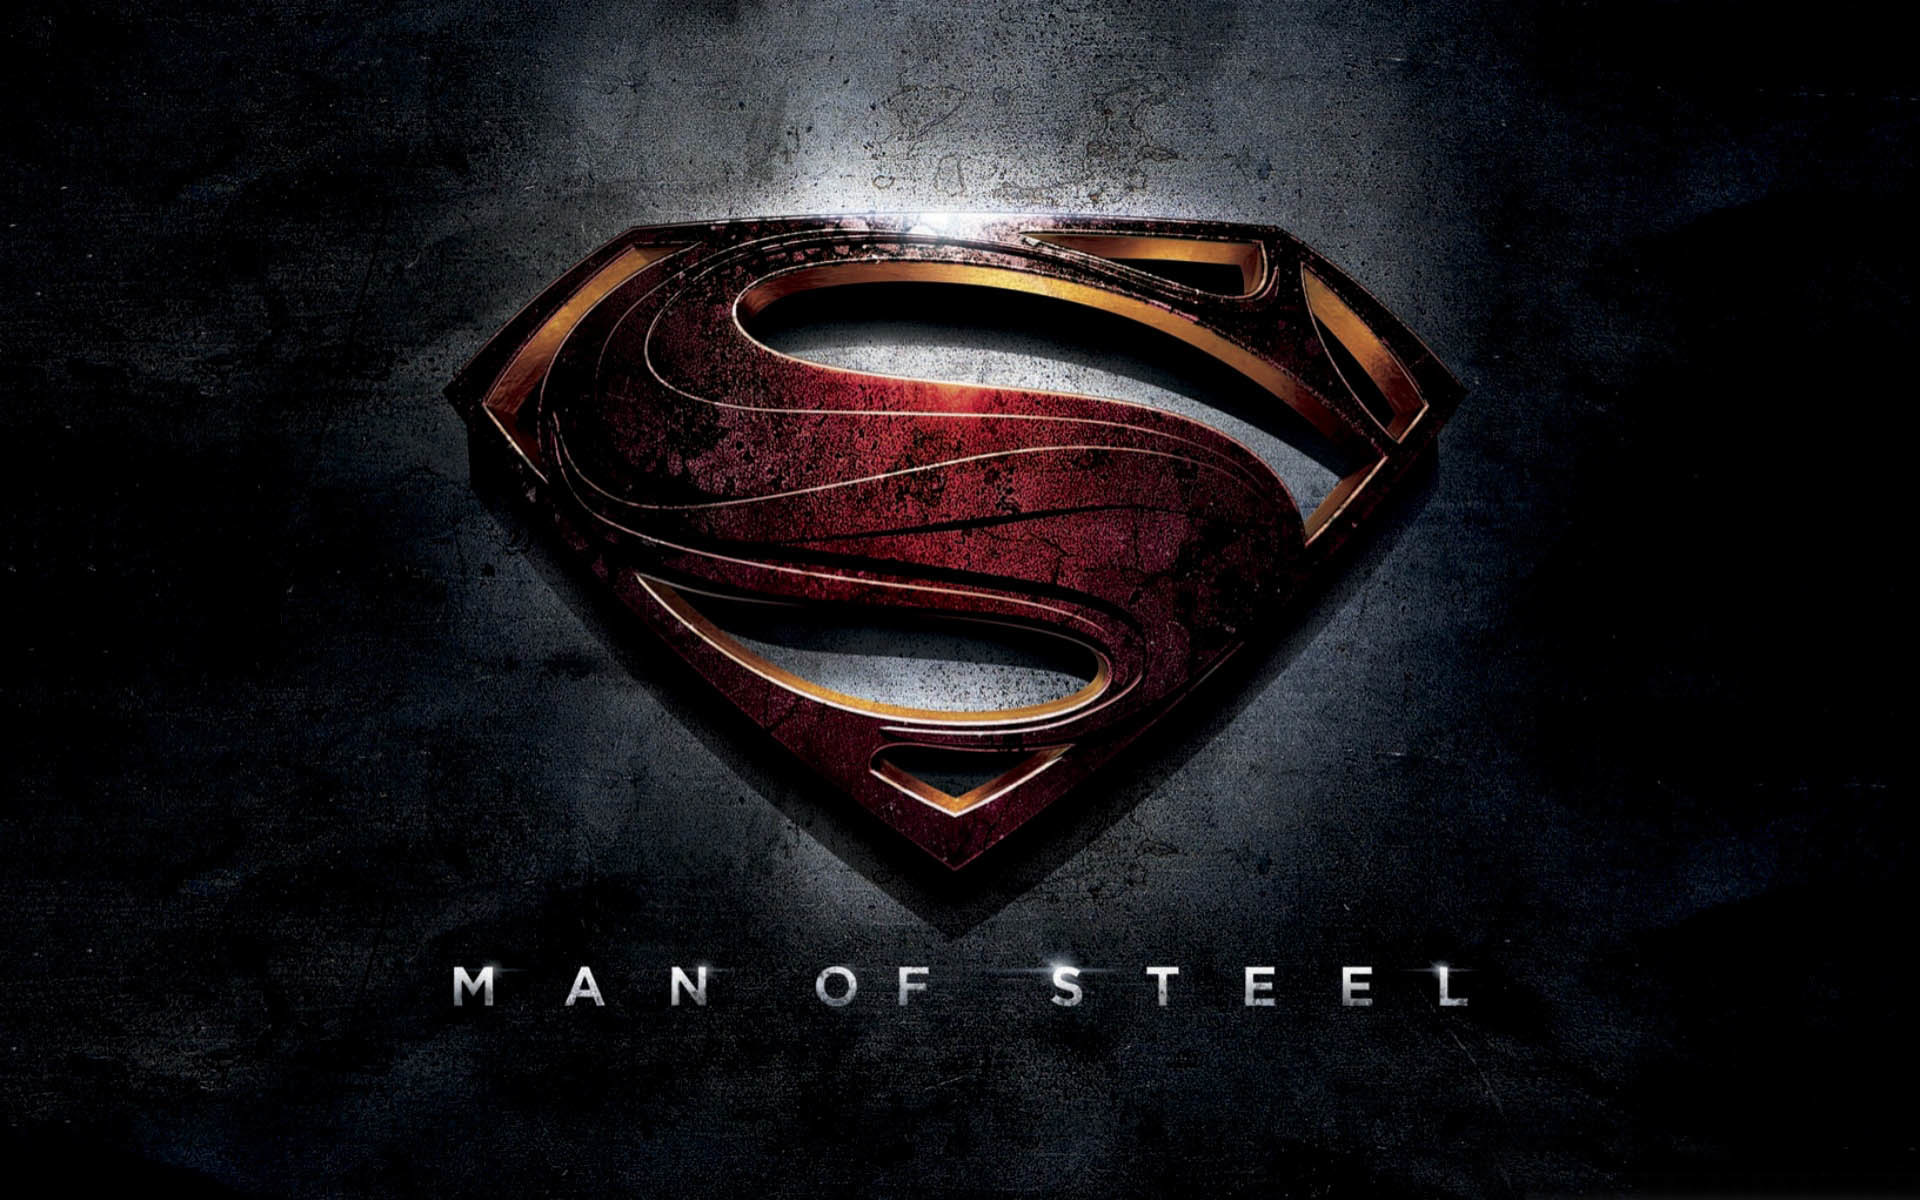 1920x1200 Superman Man of Steel Logo Exclusive HD Wallpapers #1898